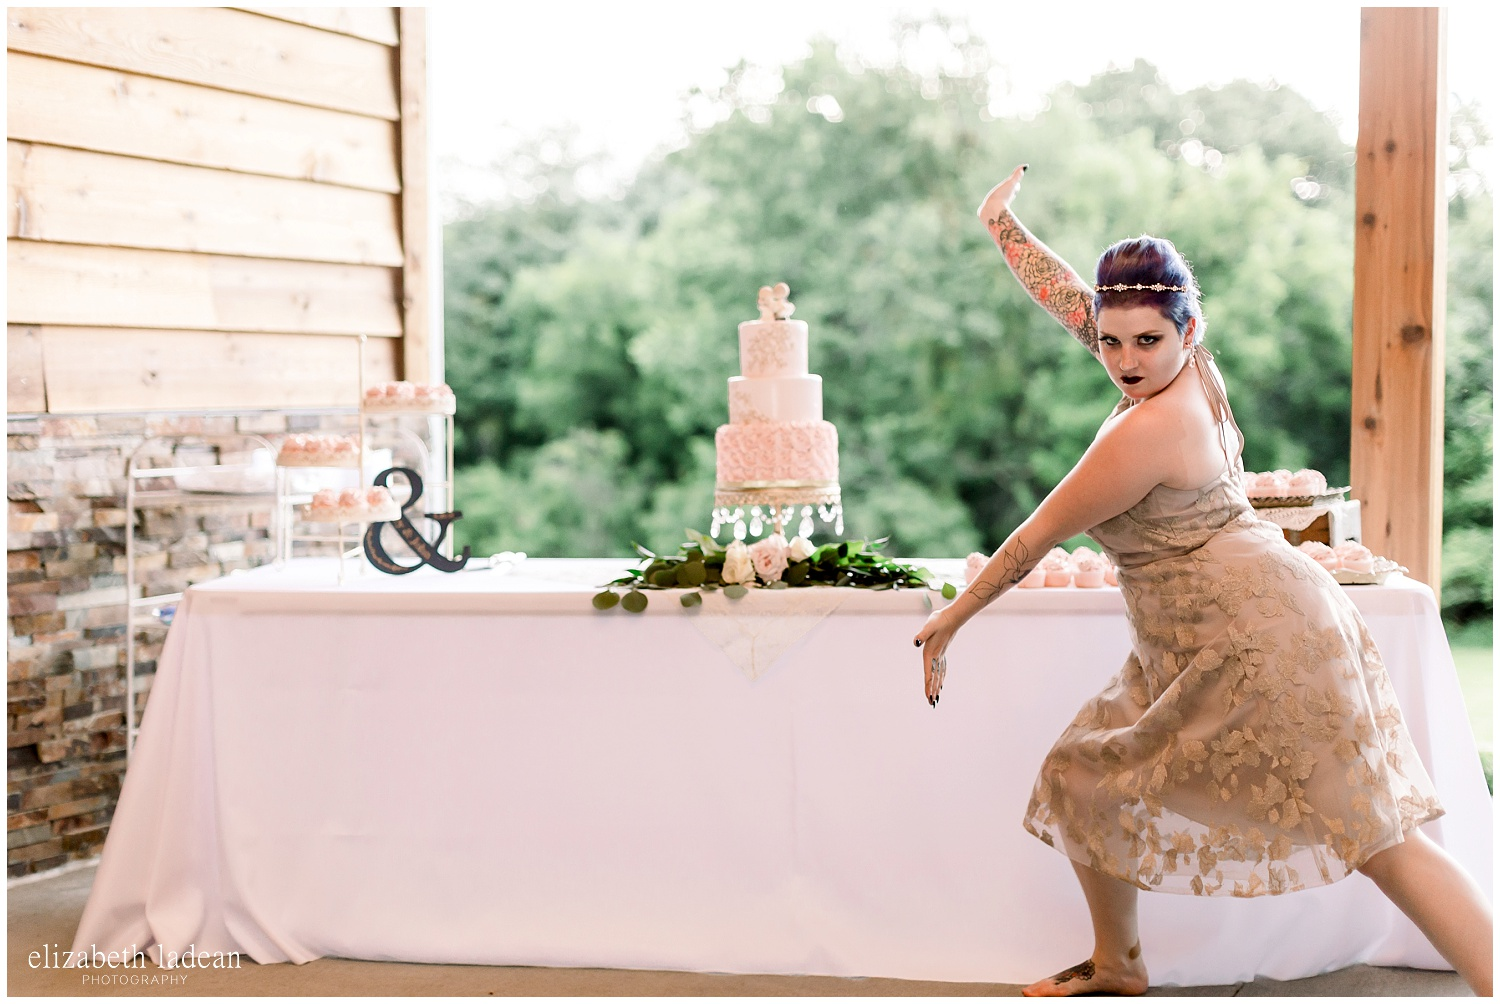 -behind-the-scenes-of-a-wedding-photographer-2018-elizabeth-ladean-photography-photo_3481.jpg